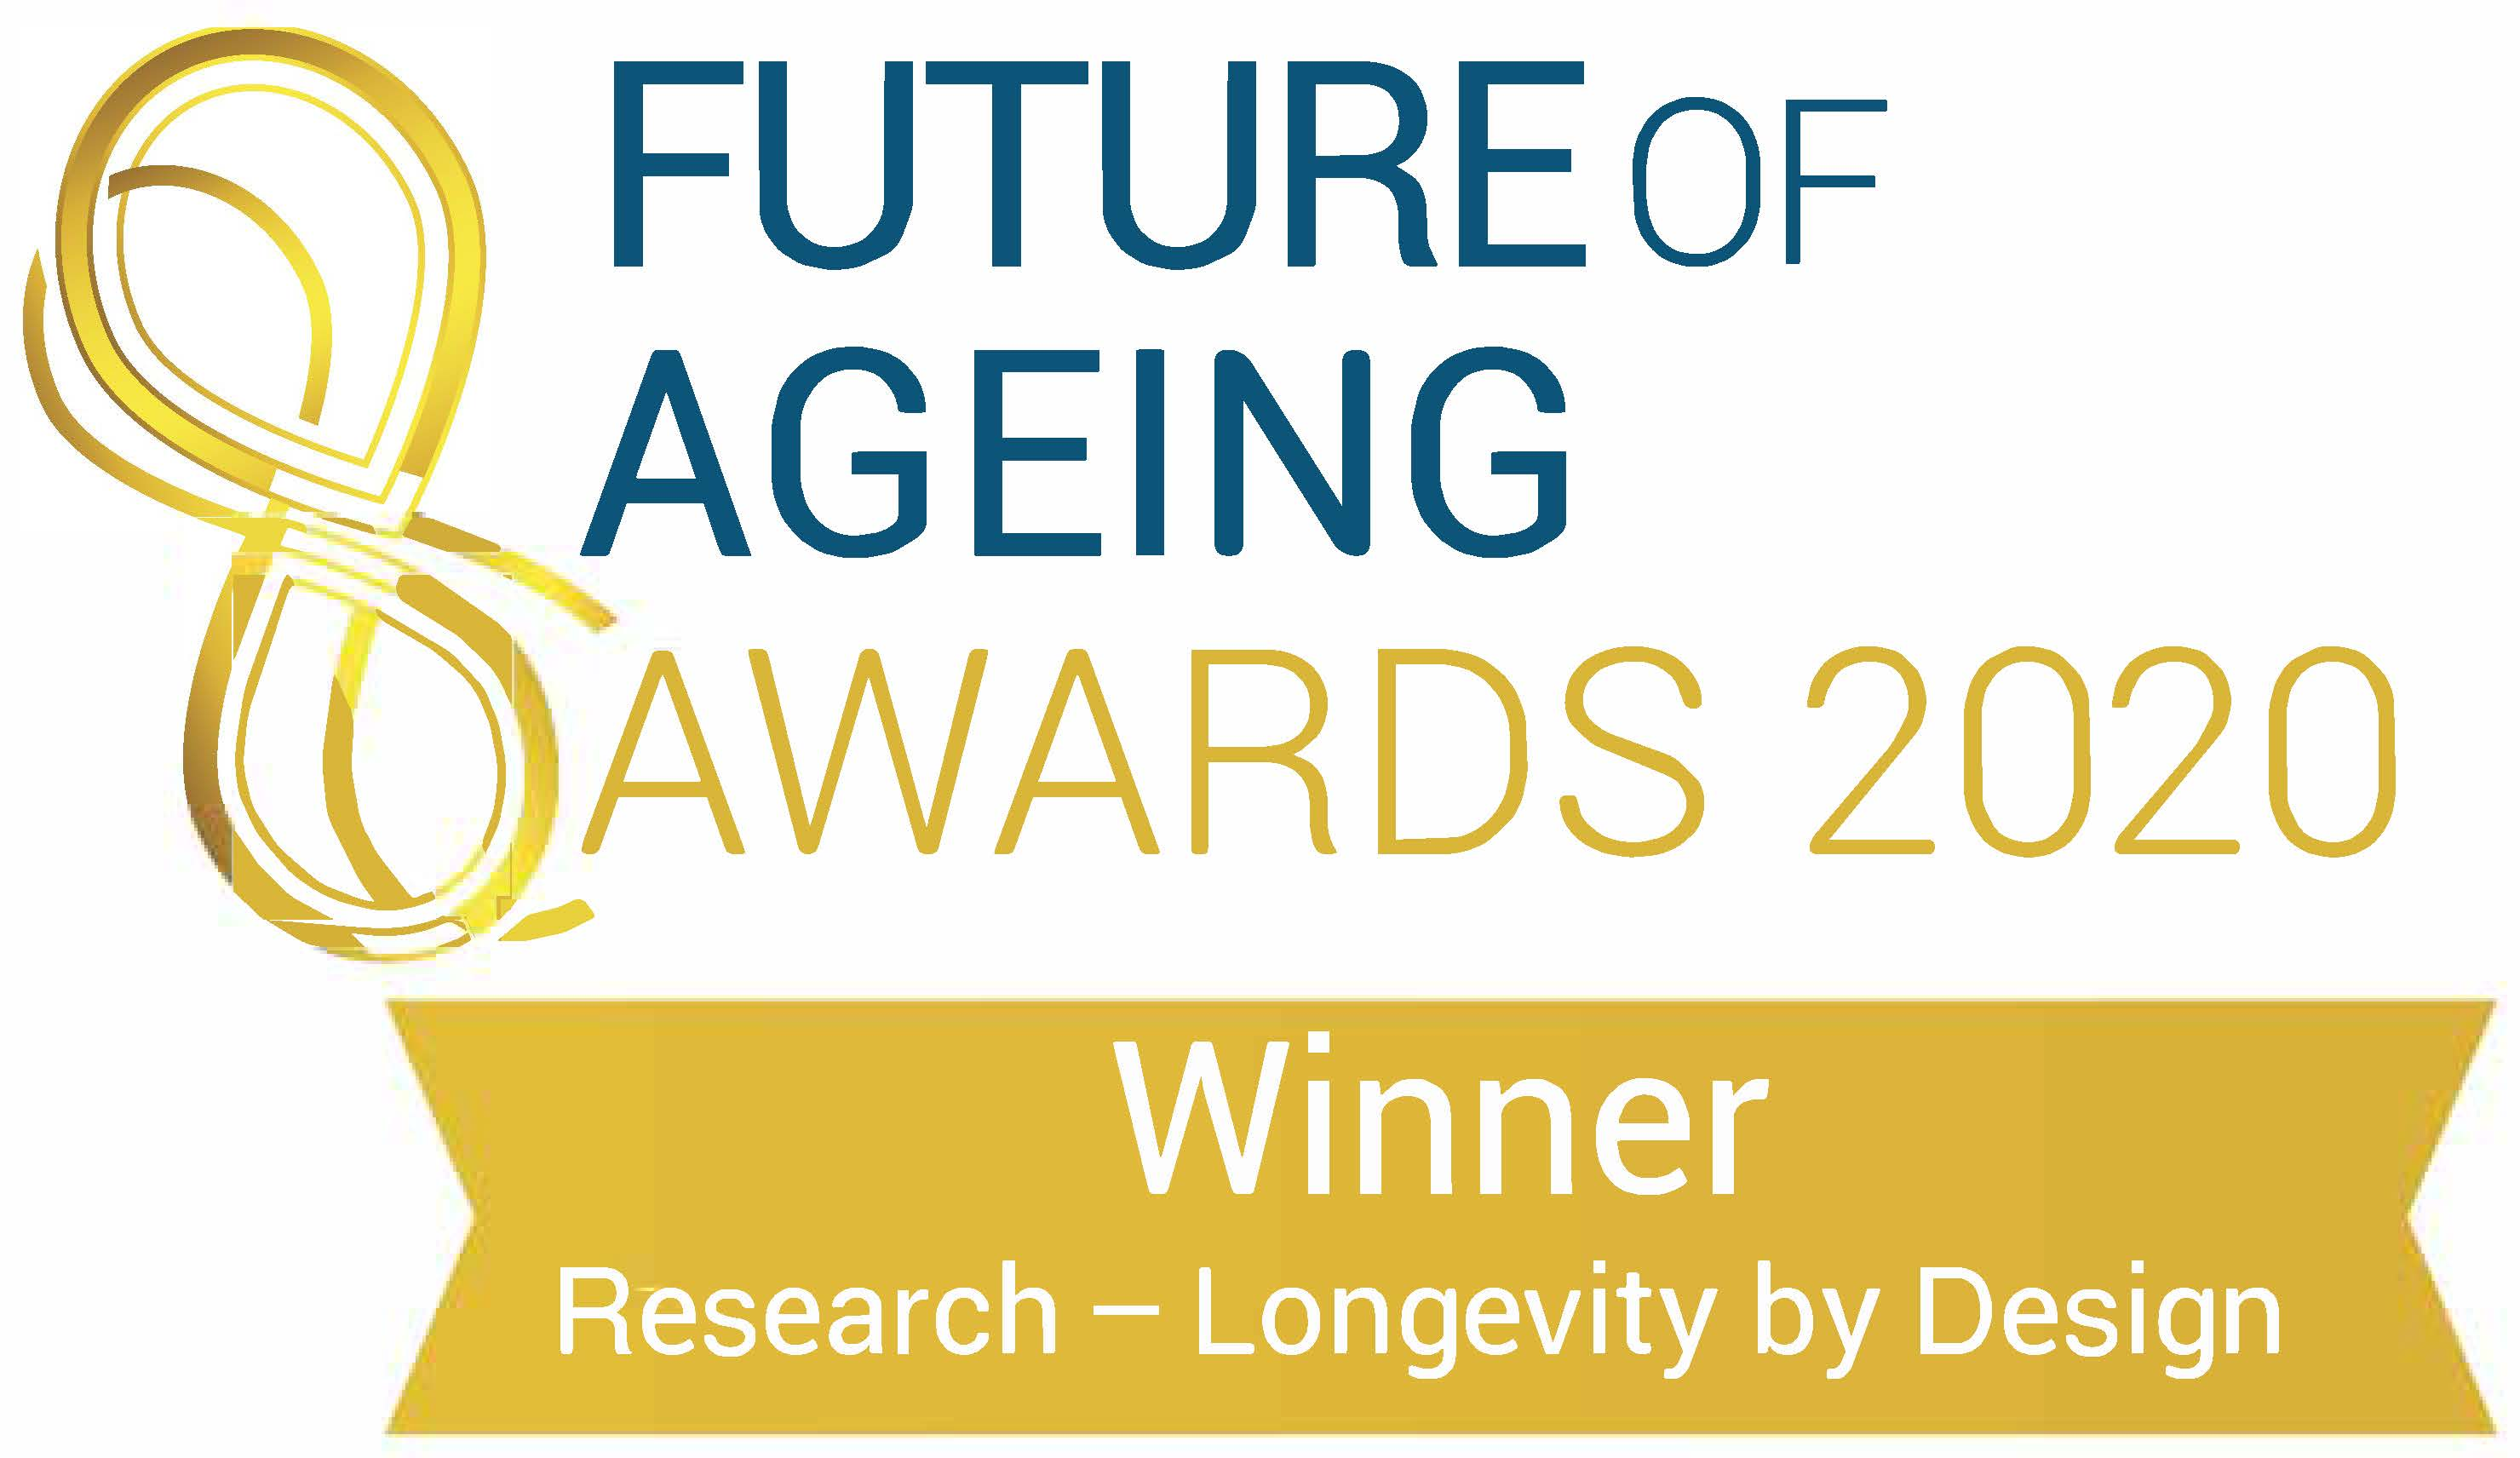 Longevity by Design wins Future of Ageing Award